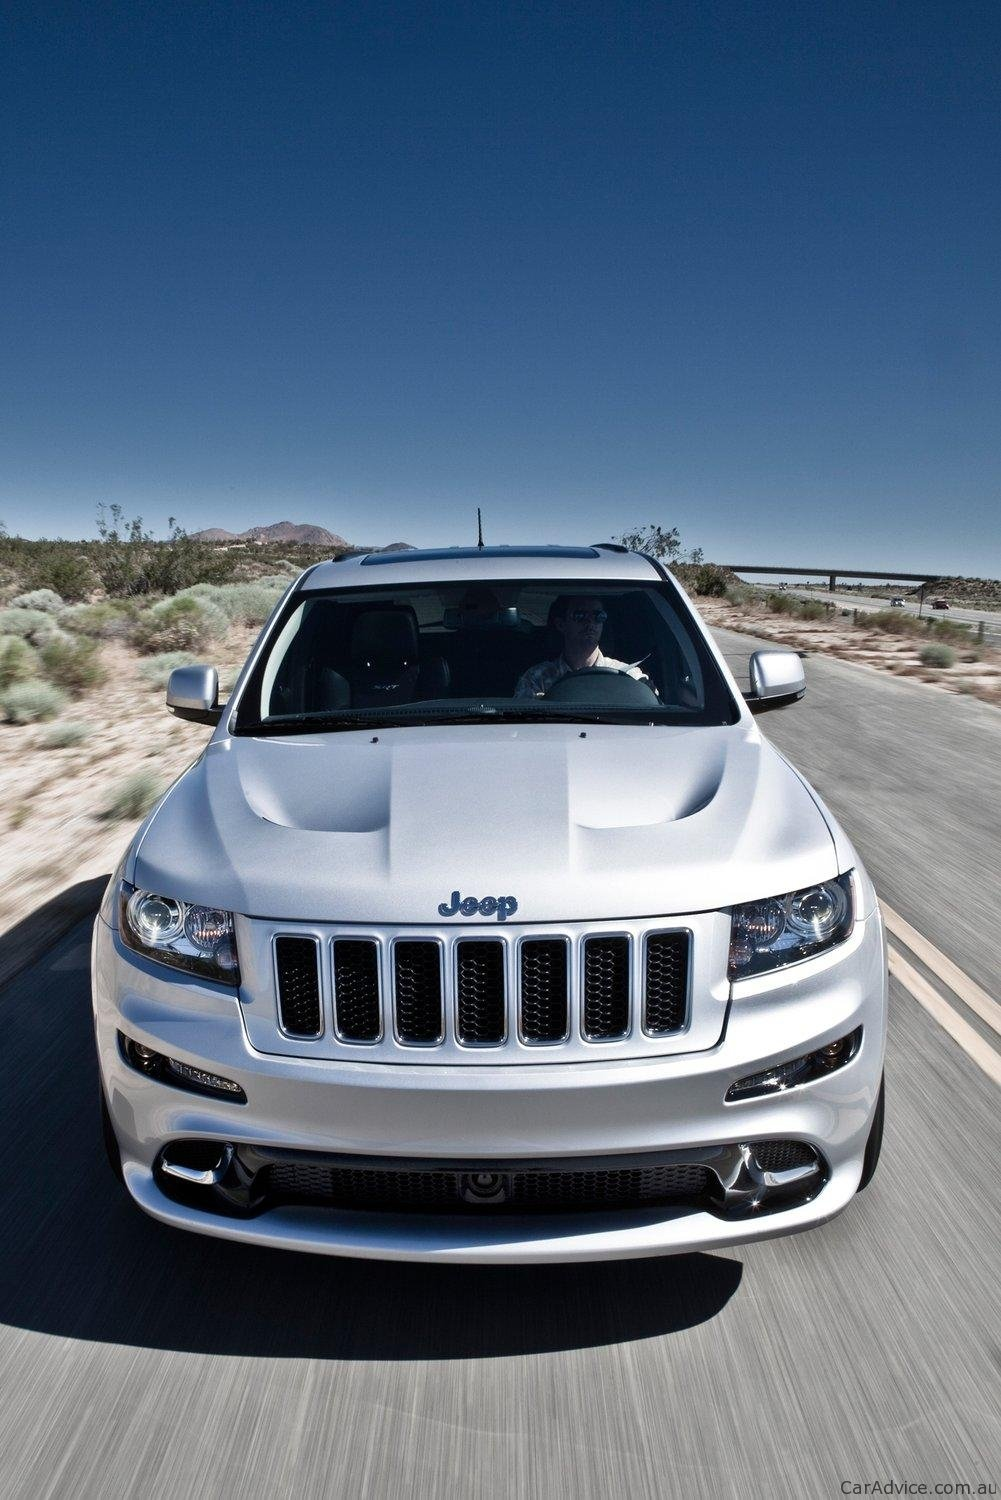 2012 Jeep Grand Cherokee Srt8 On Sale In Australia In